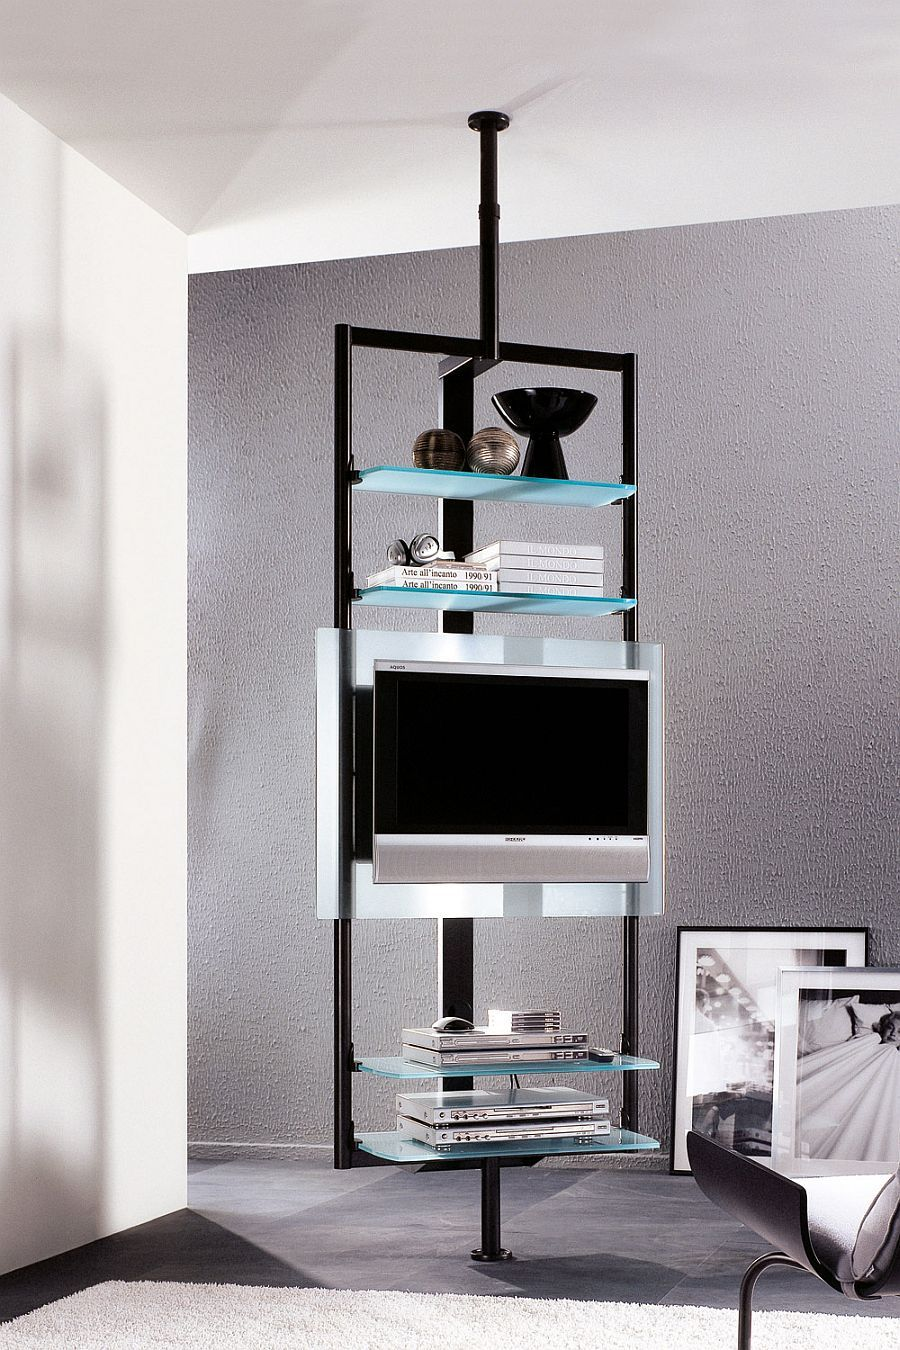 sleek silhouette of the tv stand ensures it takes little space decoist